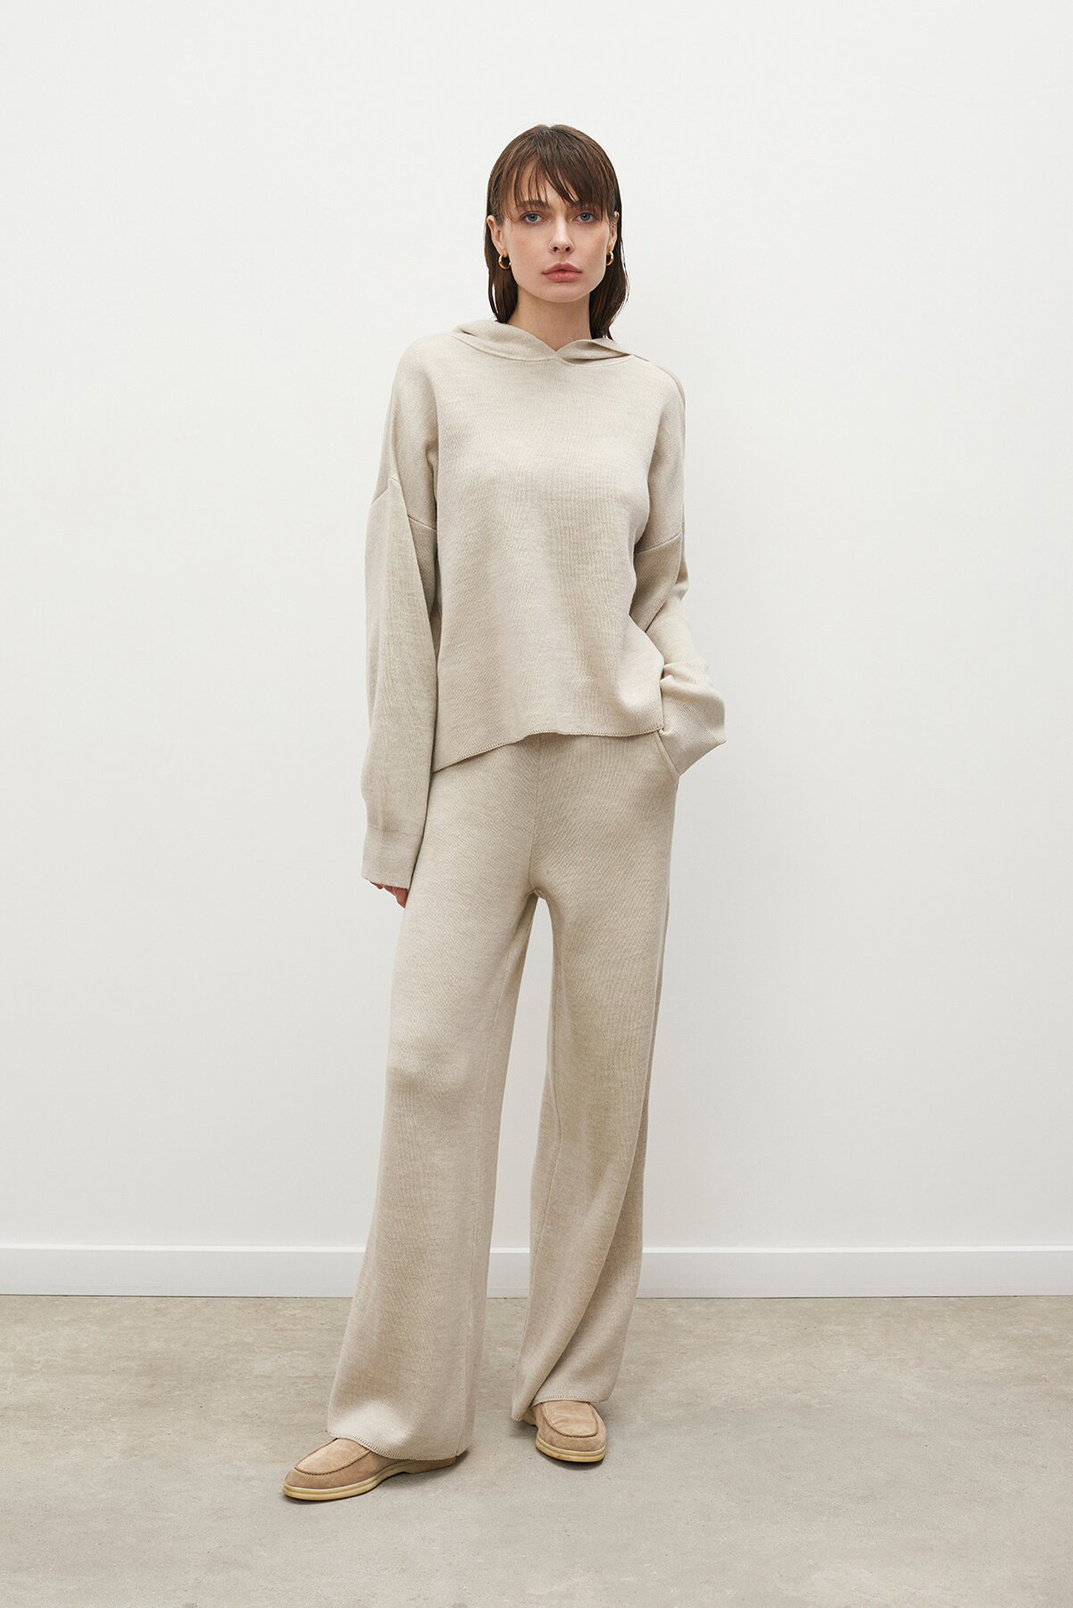 Knitted trousers, Milky, XS